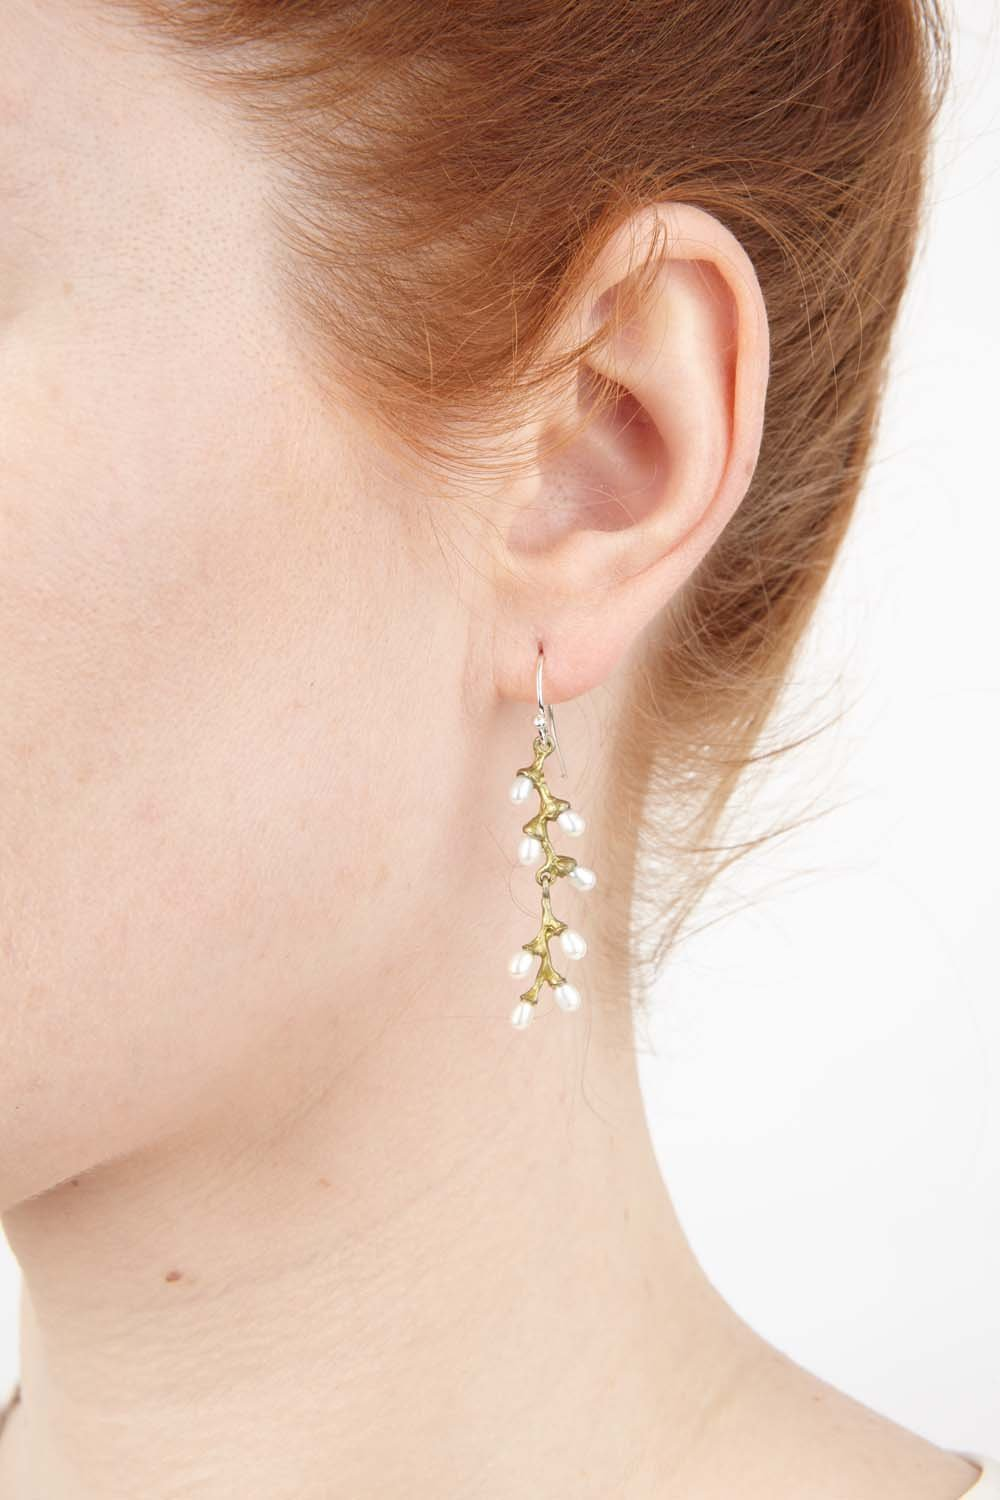 Rice Earrings - Pearl Wire